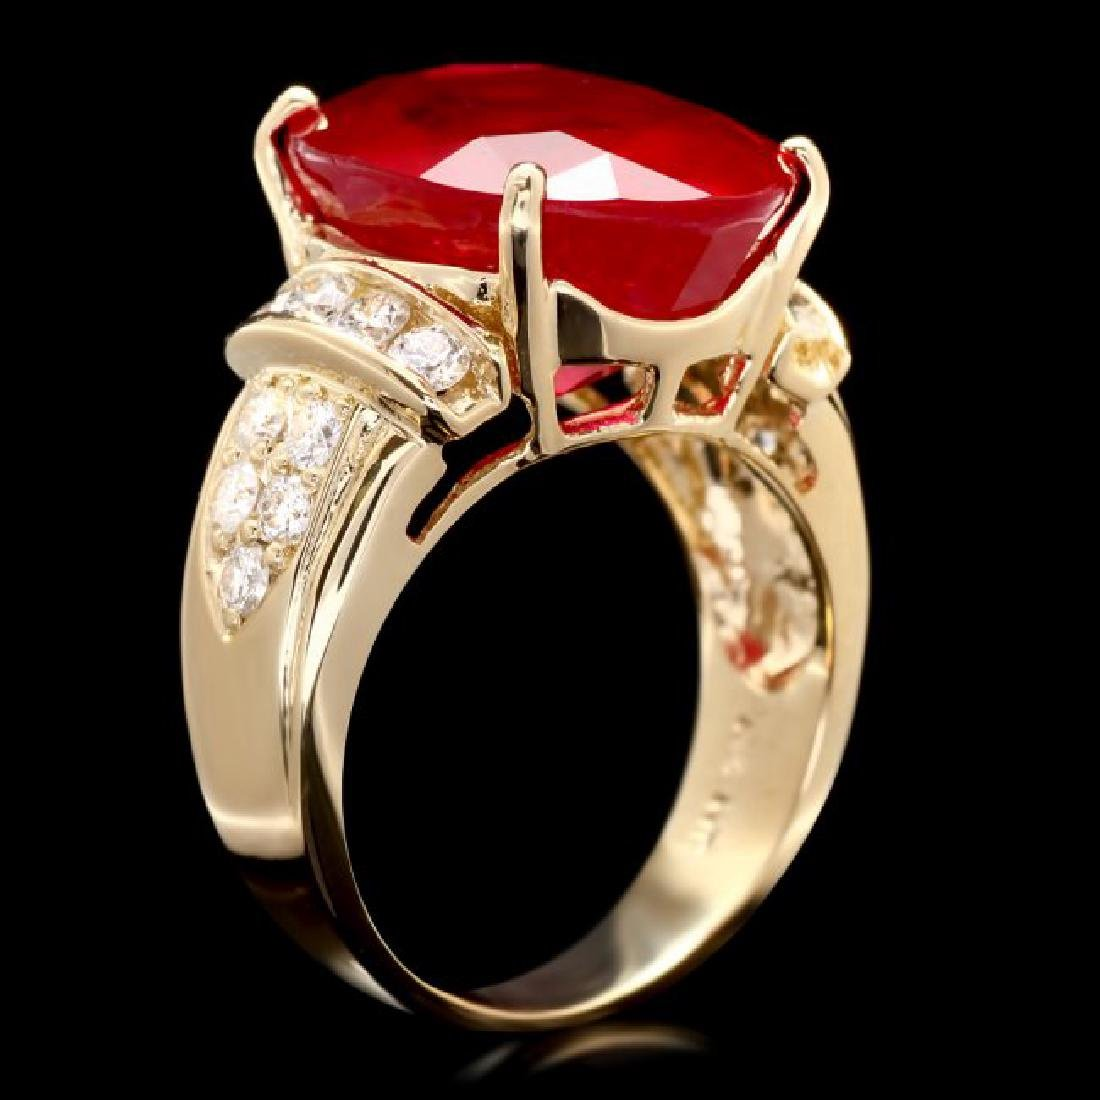 14k Yellow Gold 15.75ct Ruby 0.80ct Diamond Ring - 2